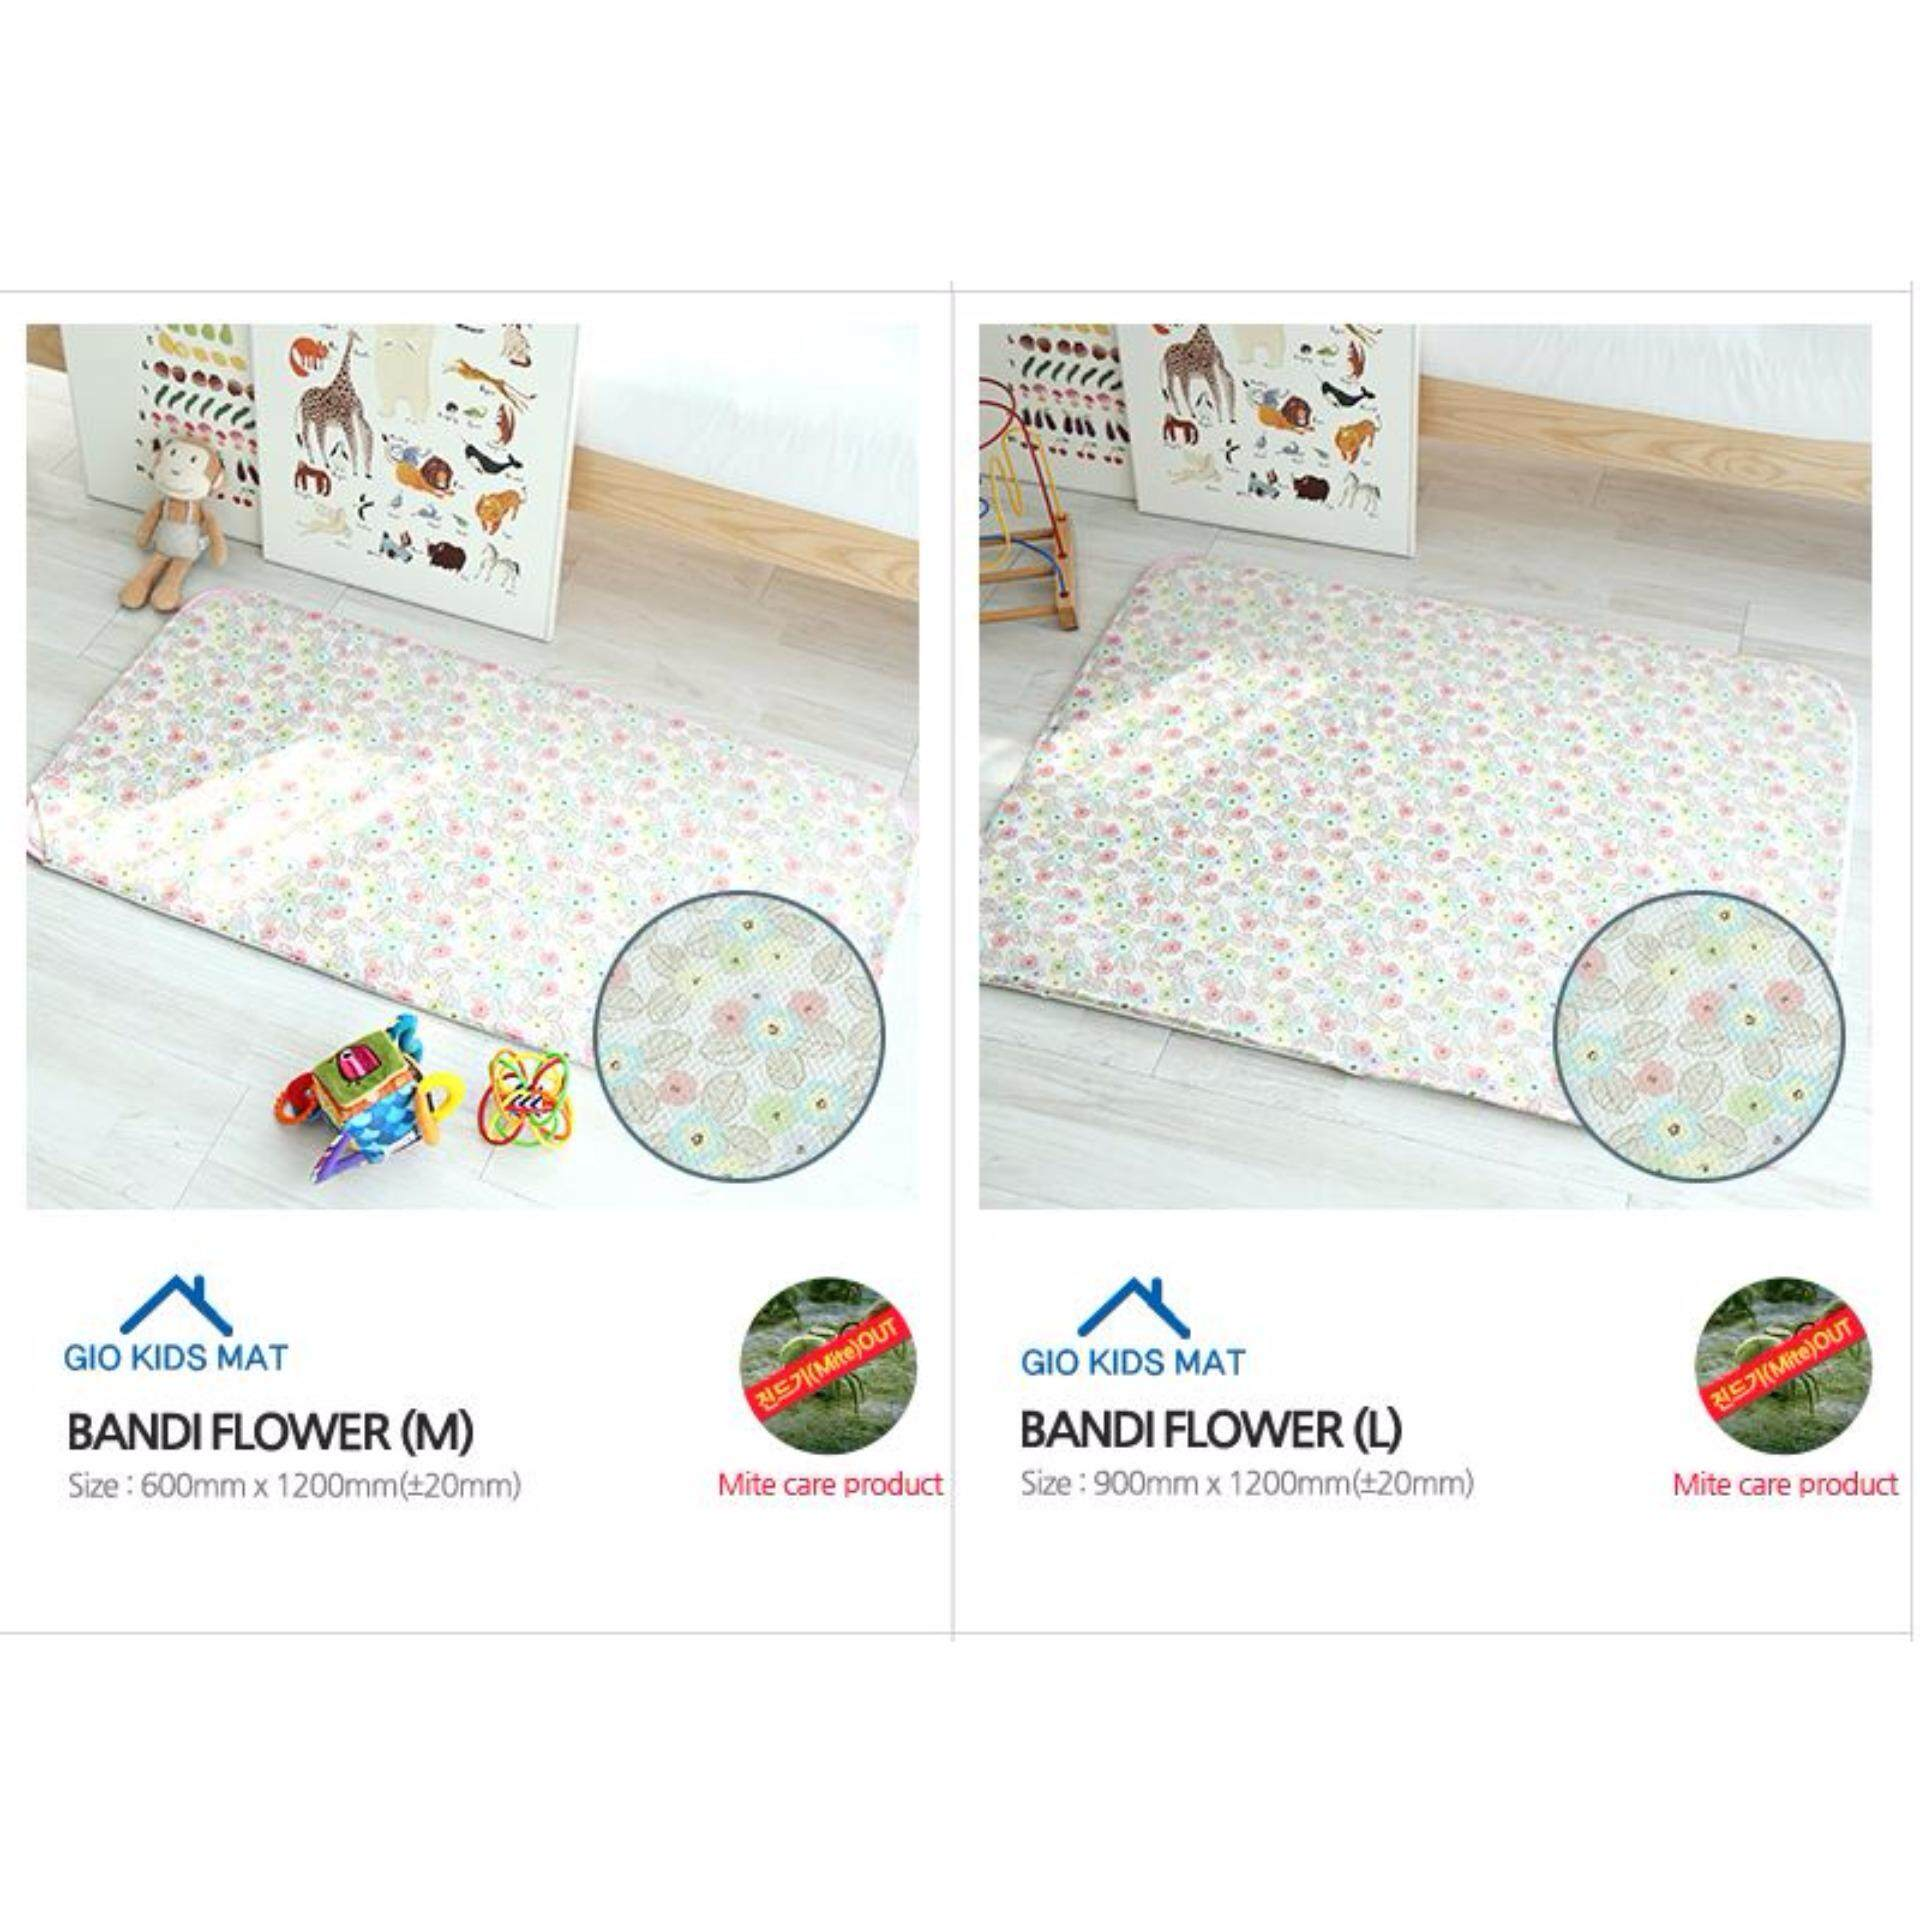 GIO KIDS MAT 2 in 1 Bandi Flower L Size with Carrier Bag